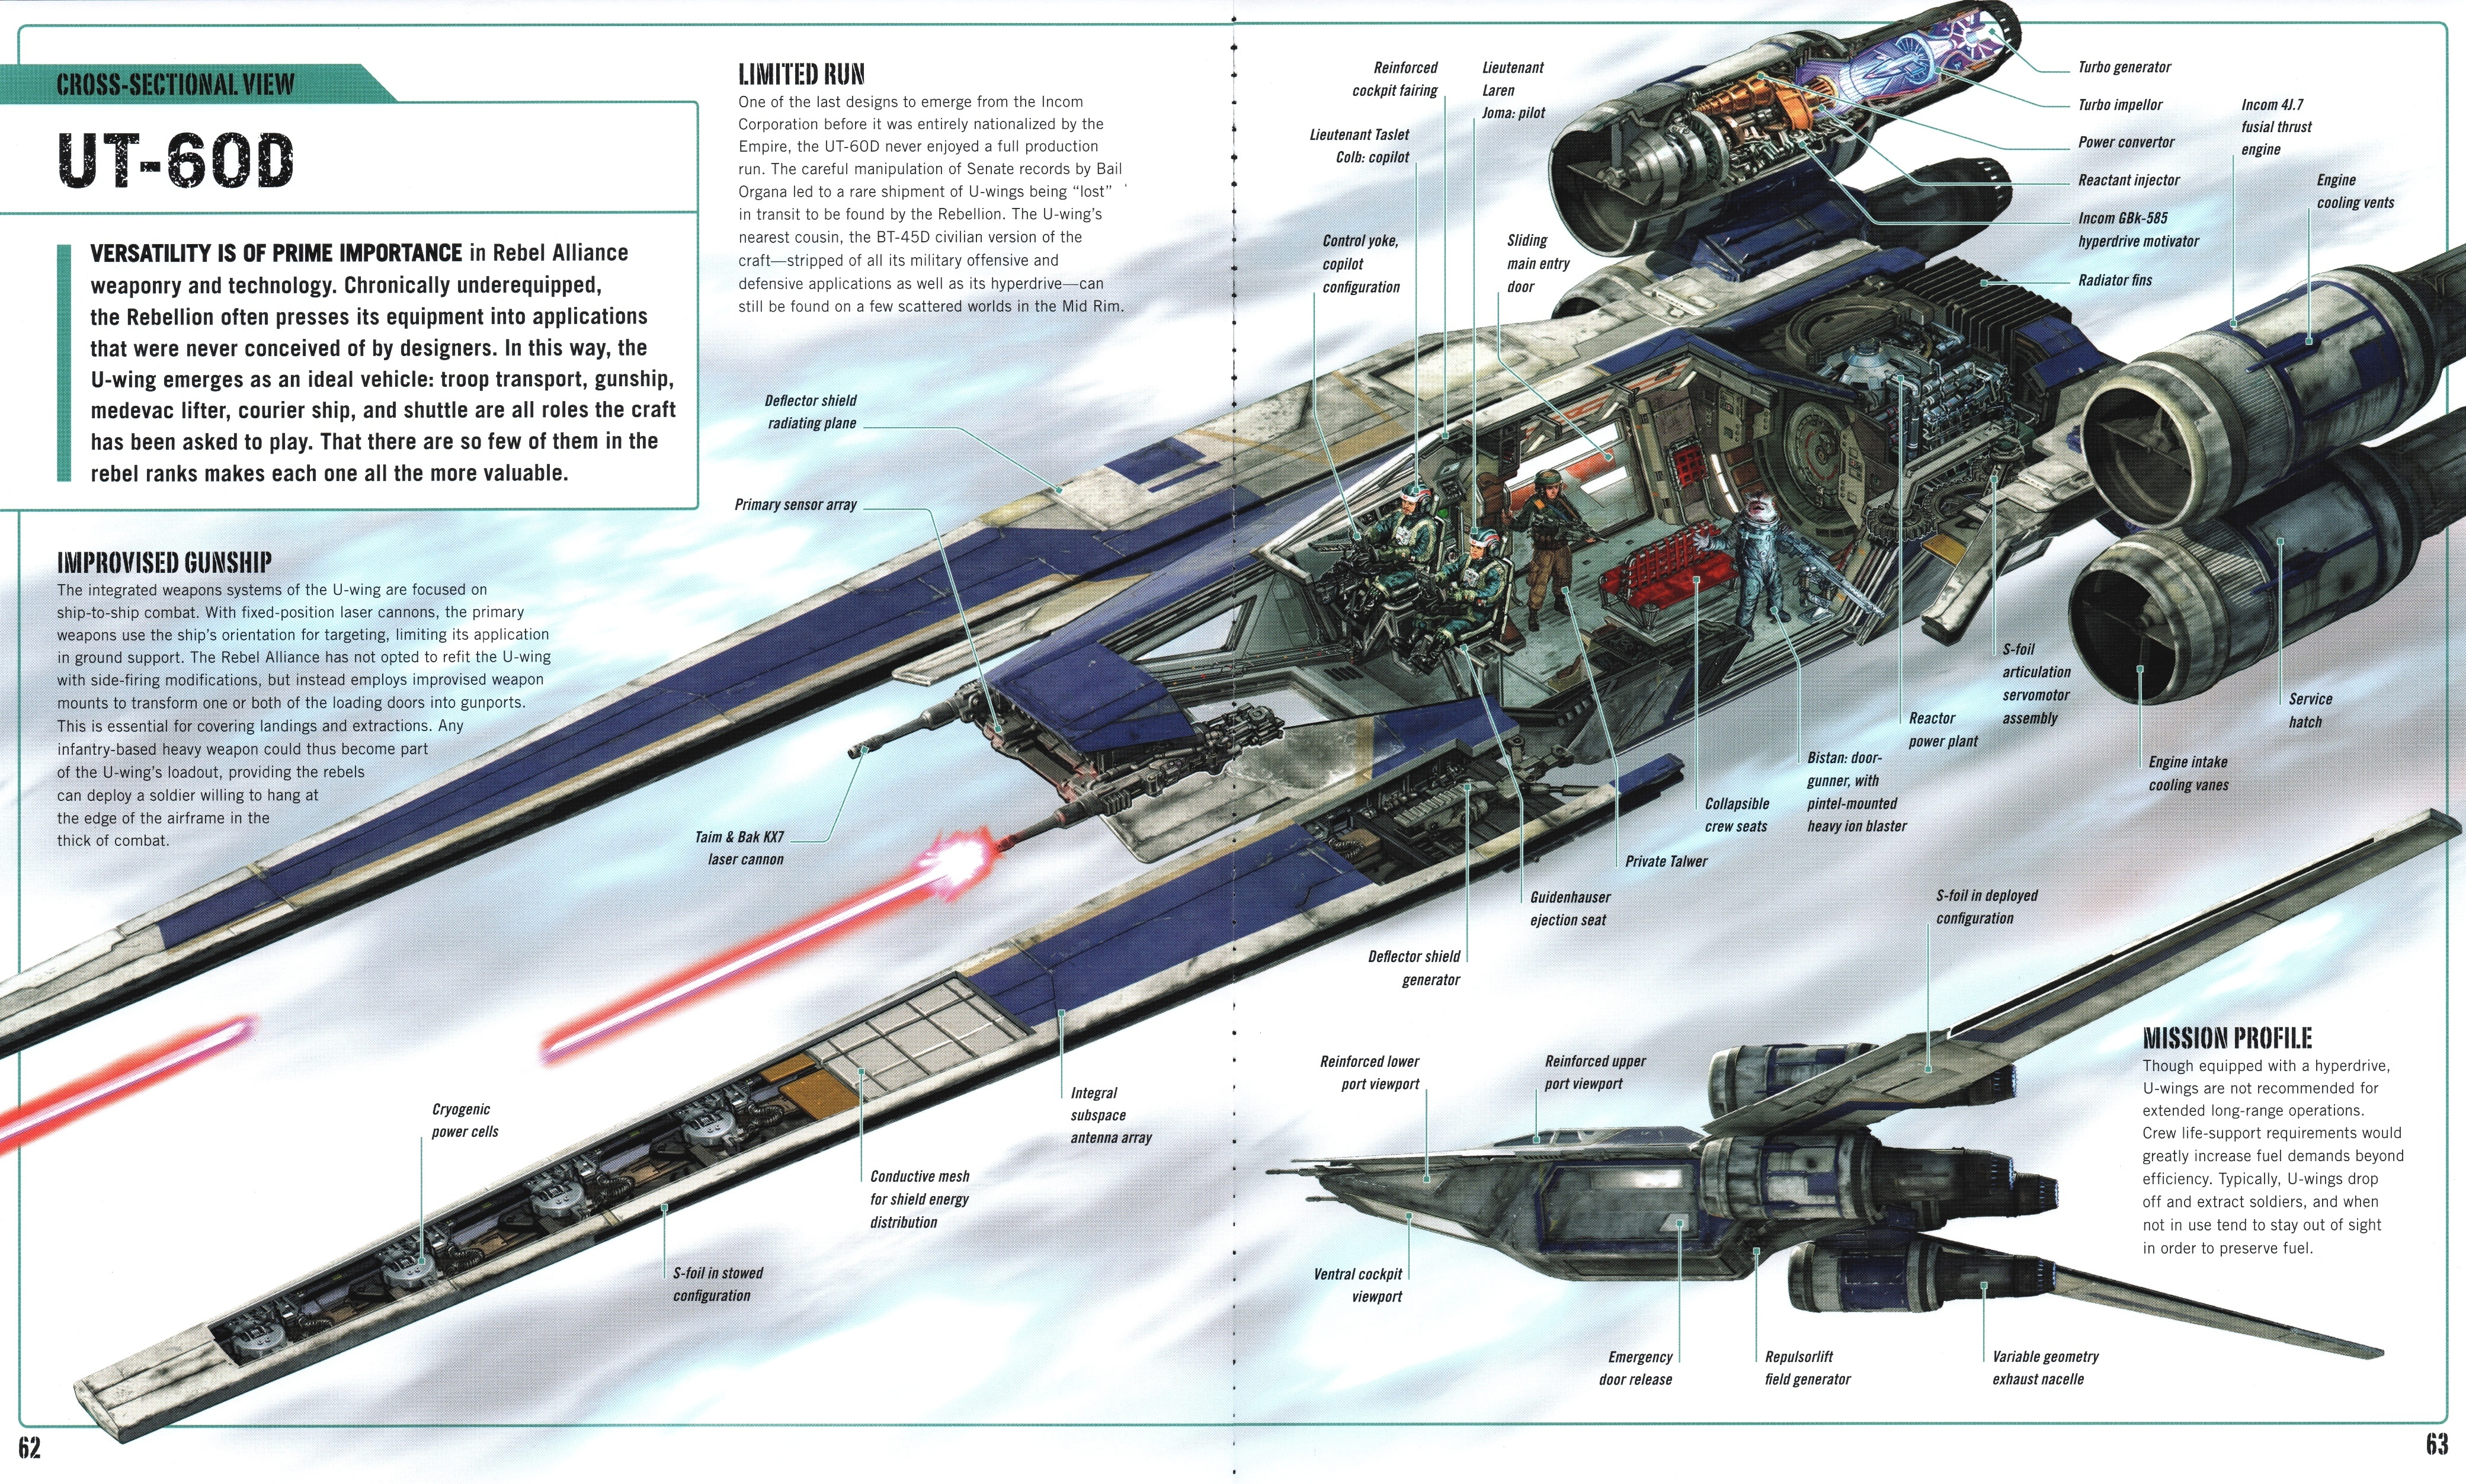 Rogue One Ultimate Visual Guide (b0bafett_Empire) p062-063